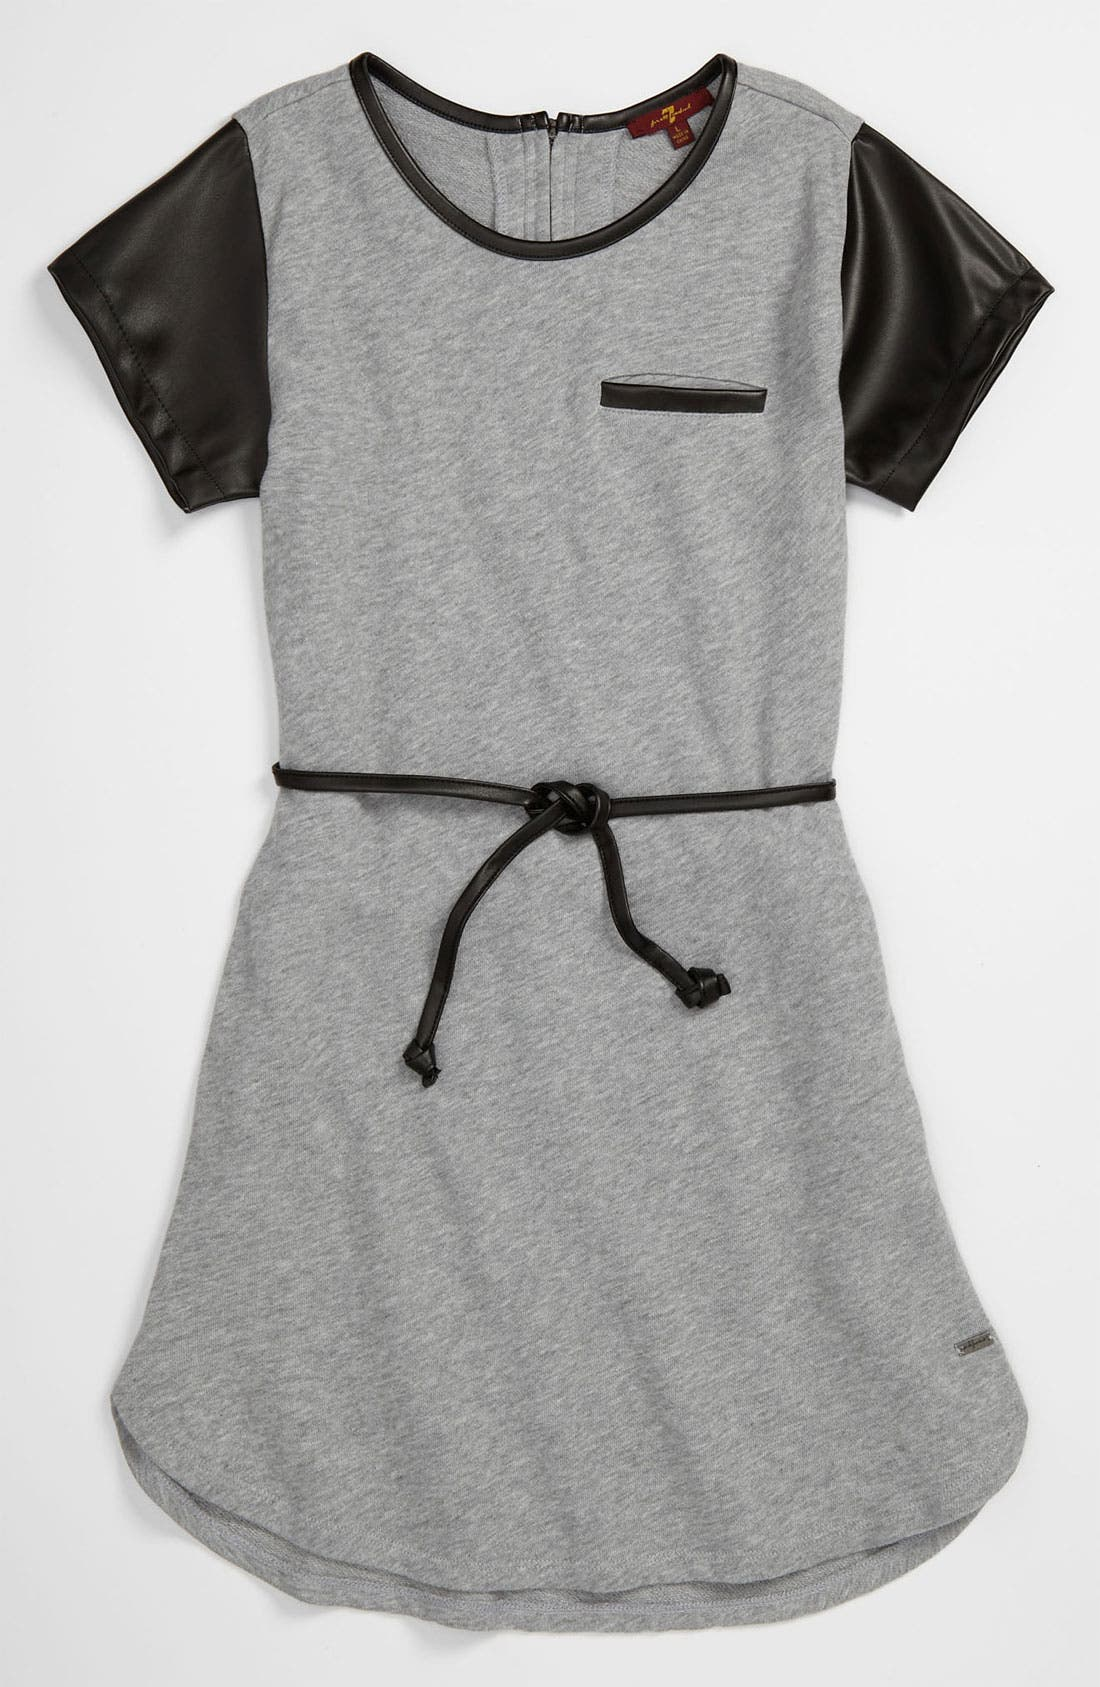 Main Image - 7 For All Mankind® Faux Leather Trim Dress (Big Girls)